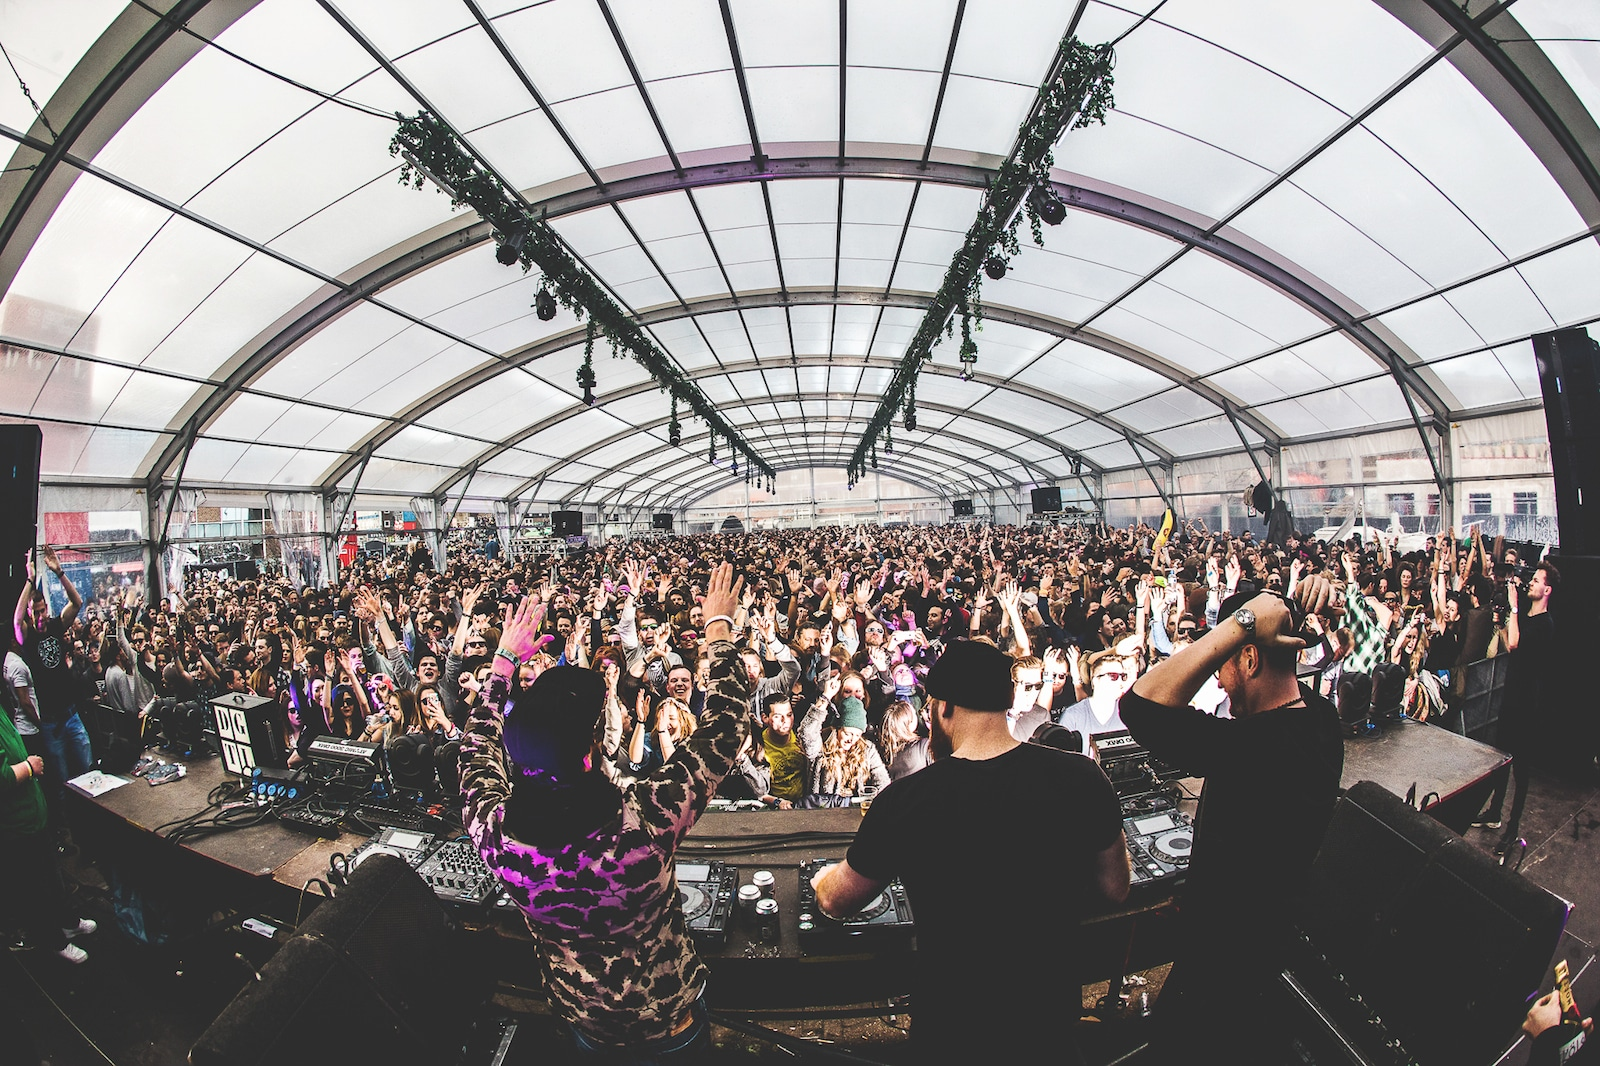 DGTL completes line-up for its 7th Amsterdam edition in